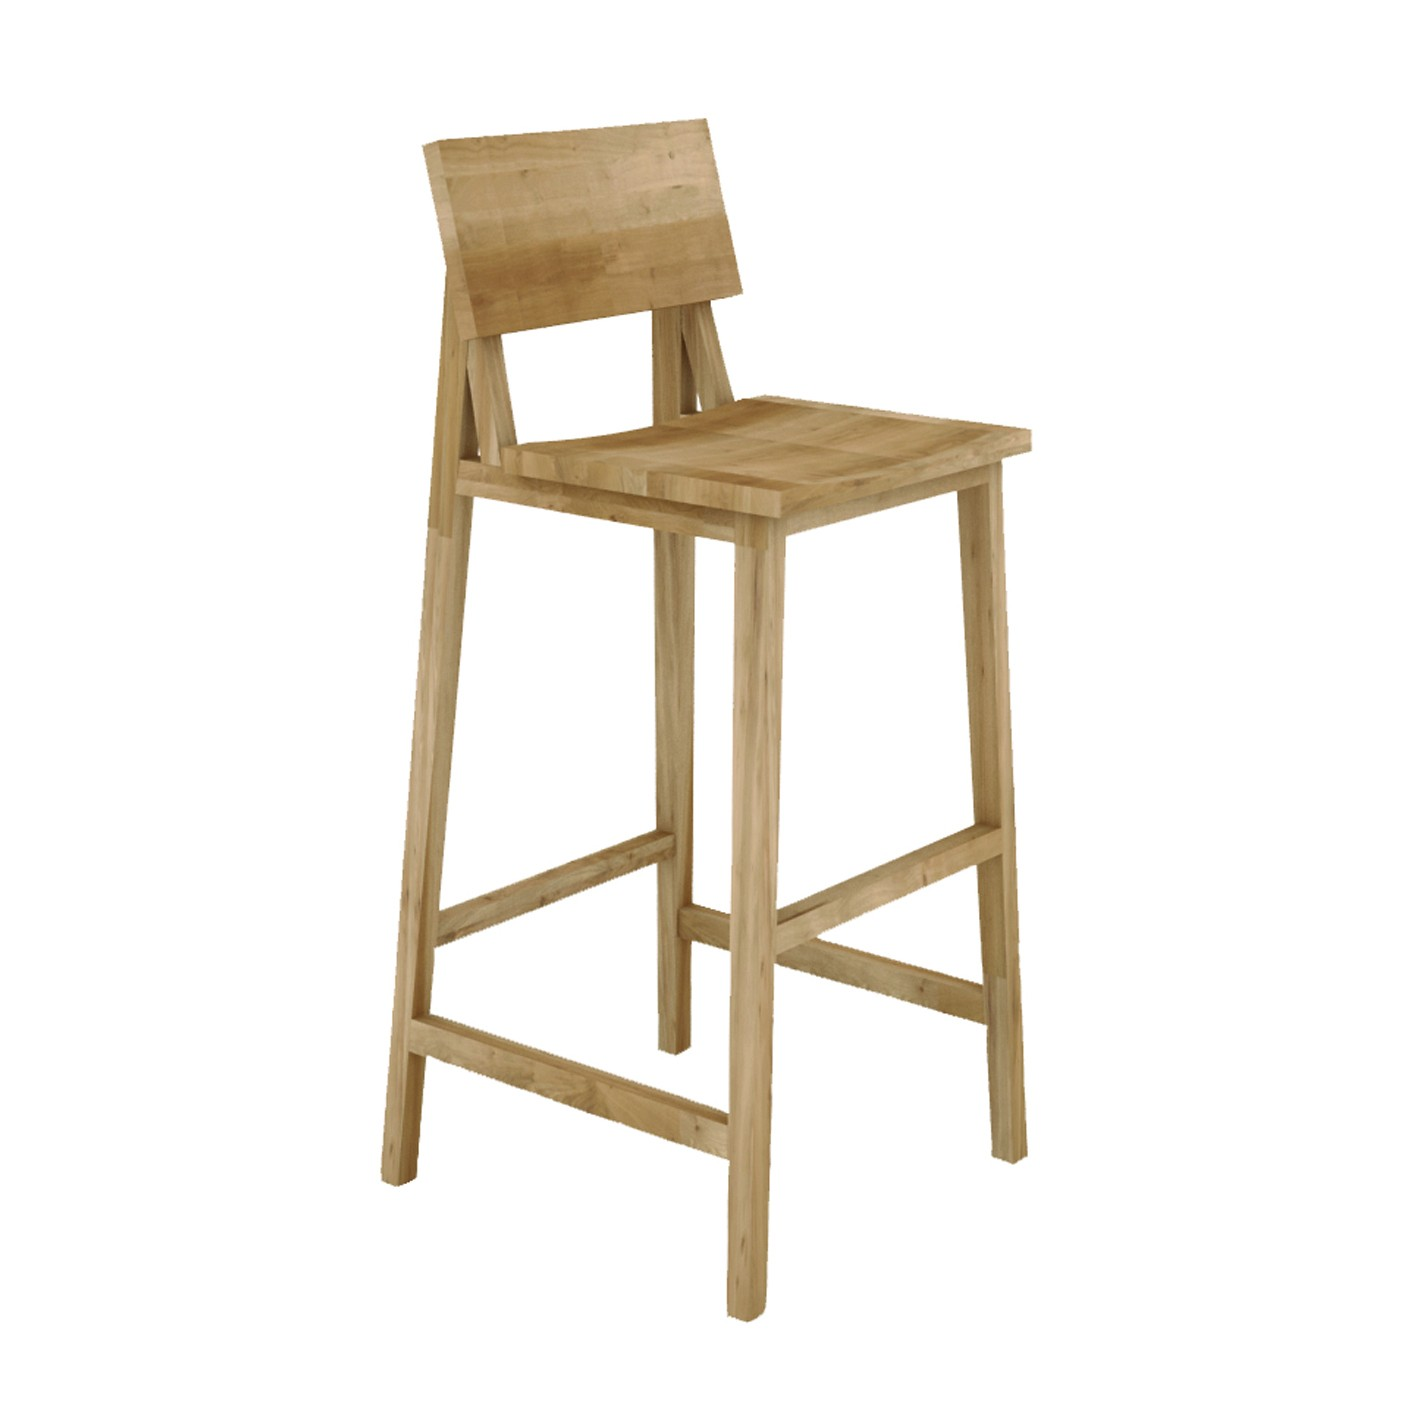 counter high chairs kids hair cutting ethnicraft oak n4 kitchen stool without amrest